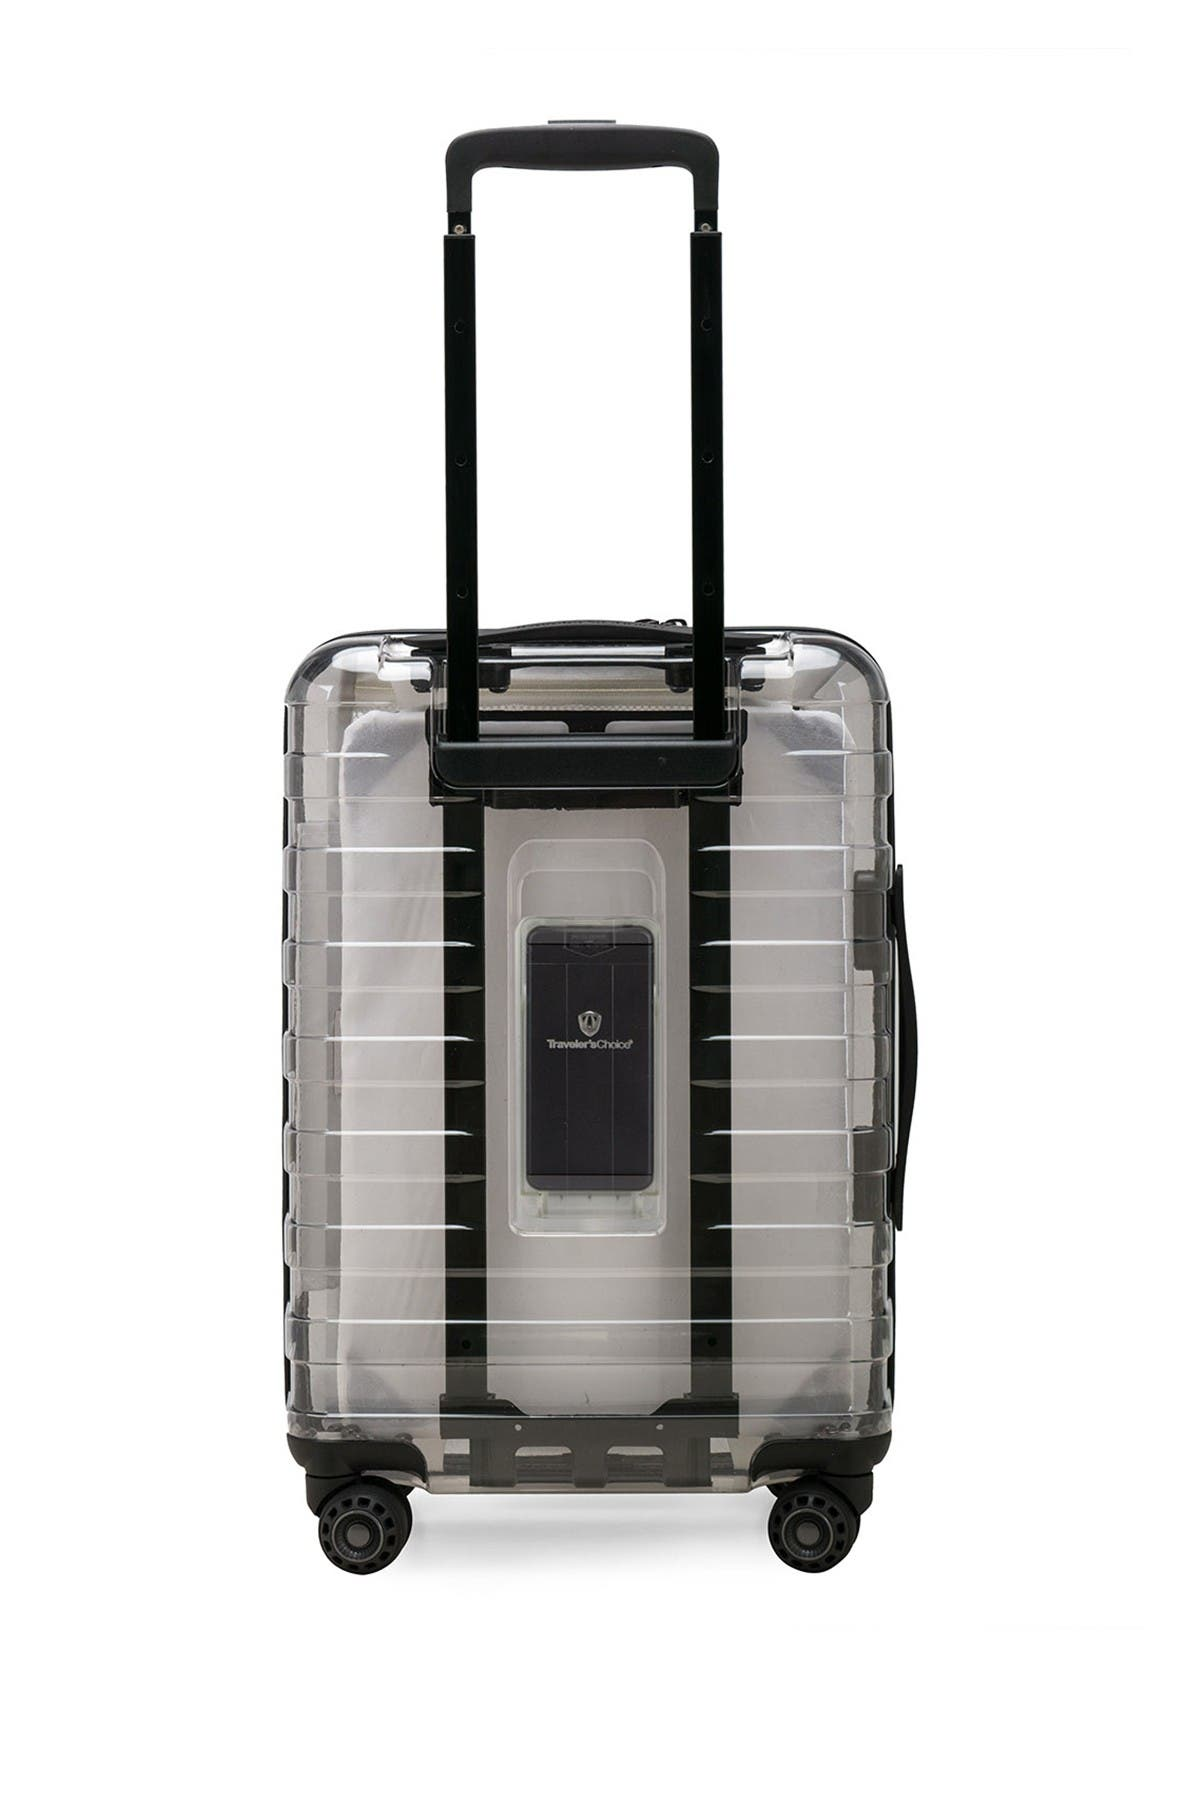 """Traveler's Choice Luggage Millennial Special Edition 21"""" Hardside Carry-On Spinner & Power Bank"""